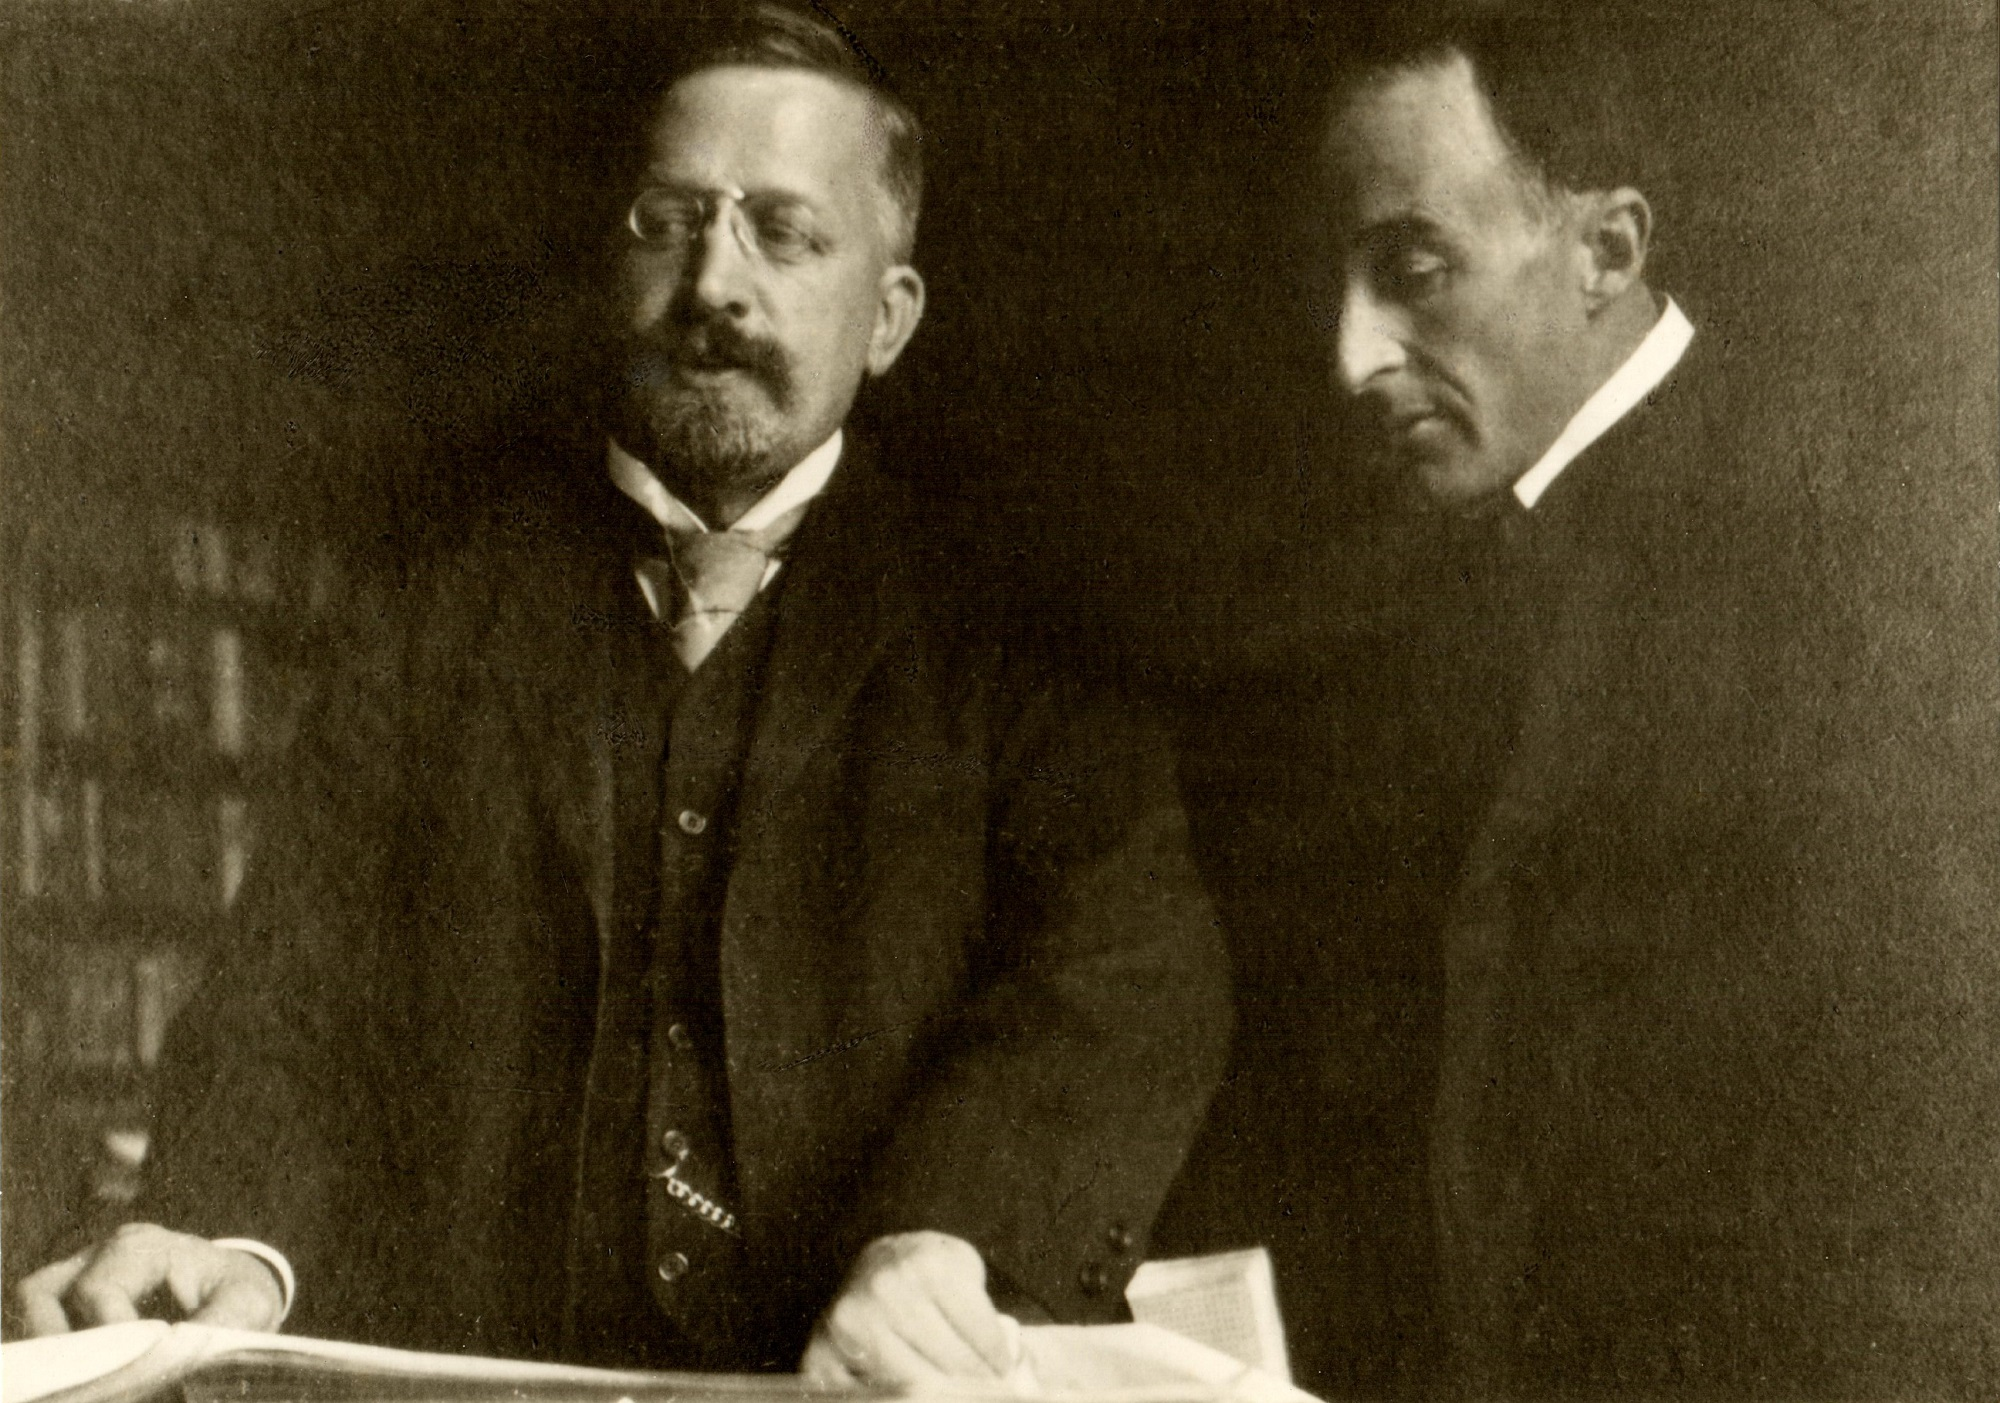 Photograph of Hans Haym (1860-1921) and Frederick Delius (1862-1934)